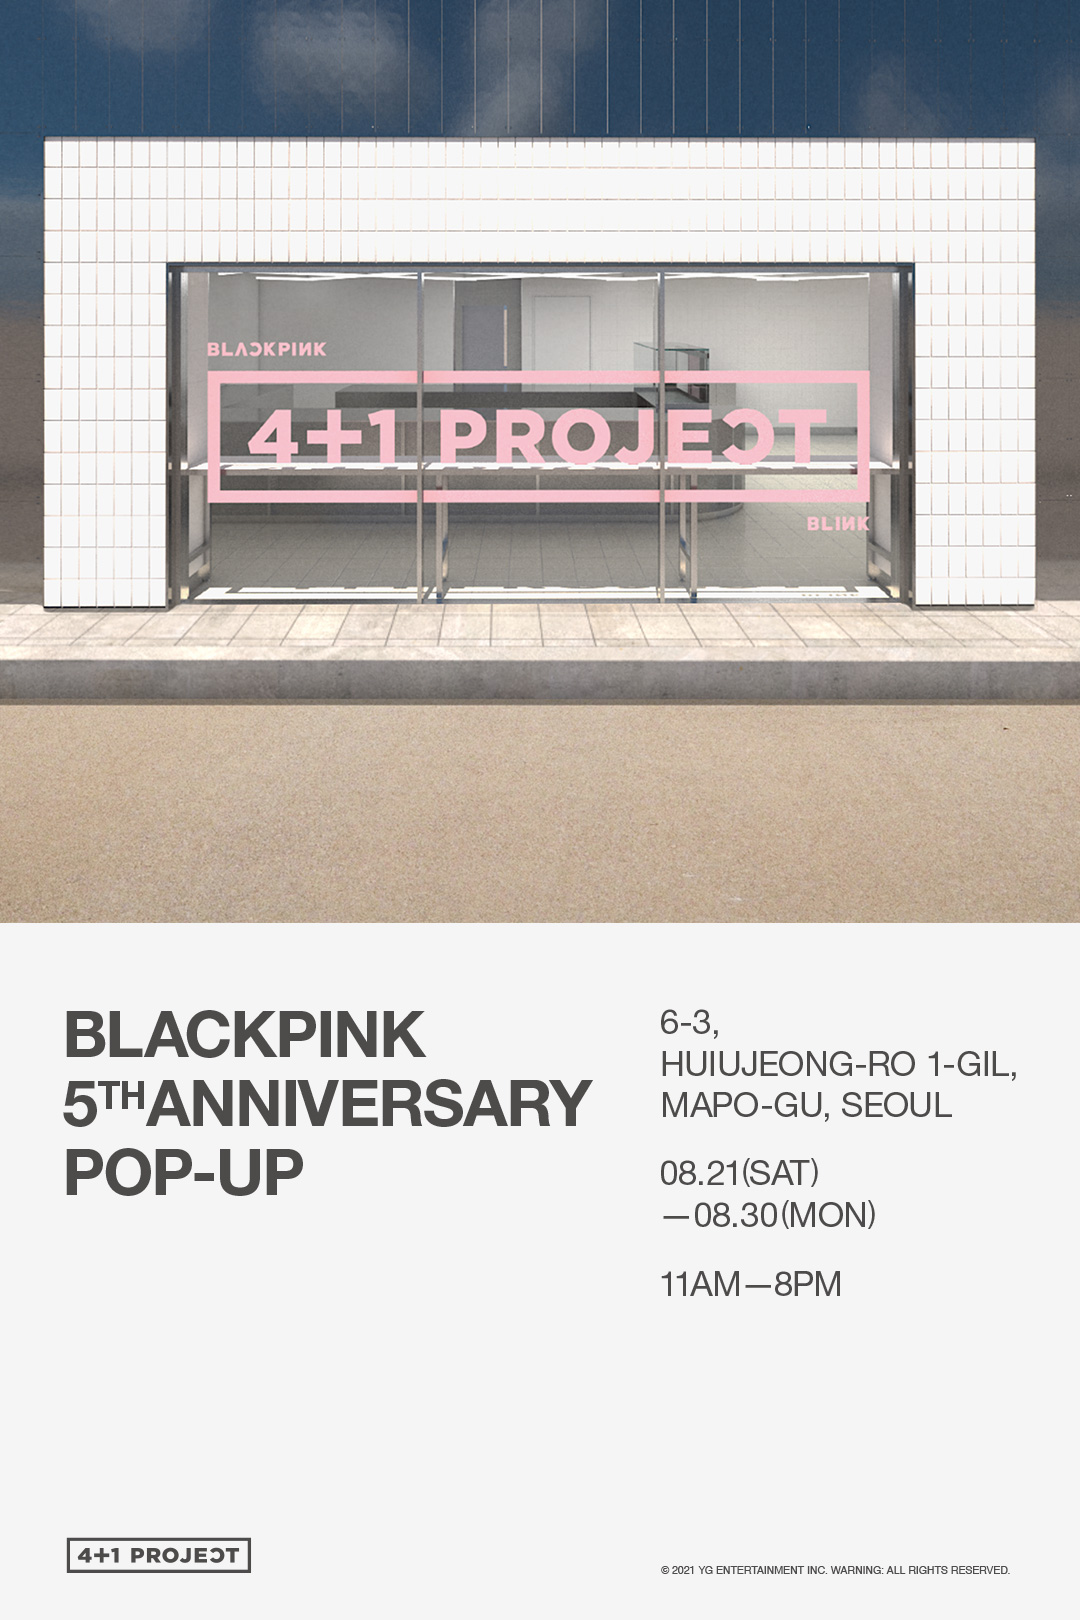 4+1 PROJECT POP-UP